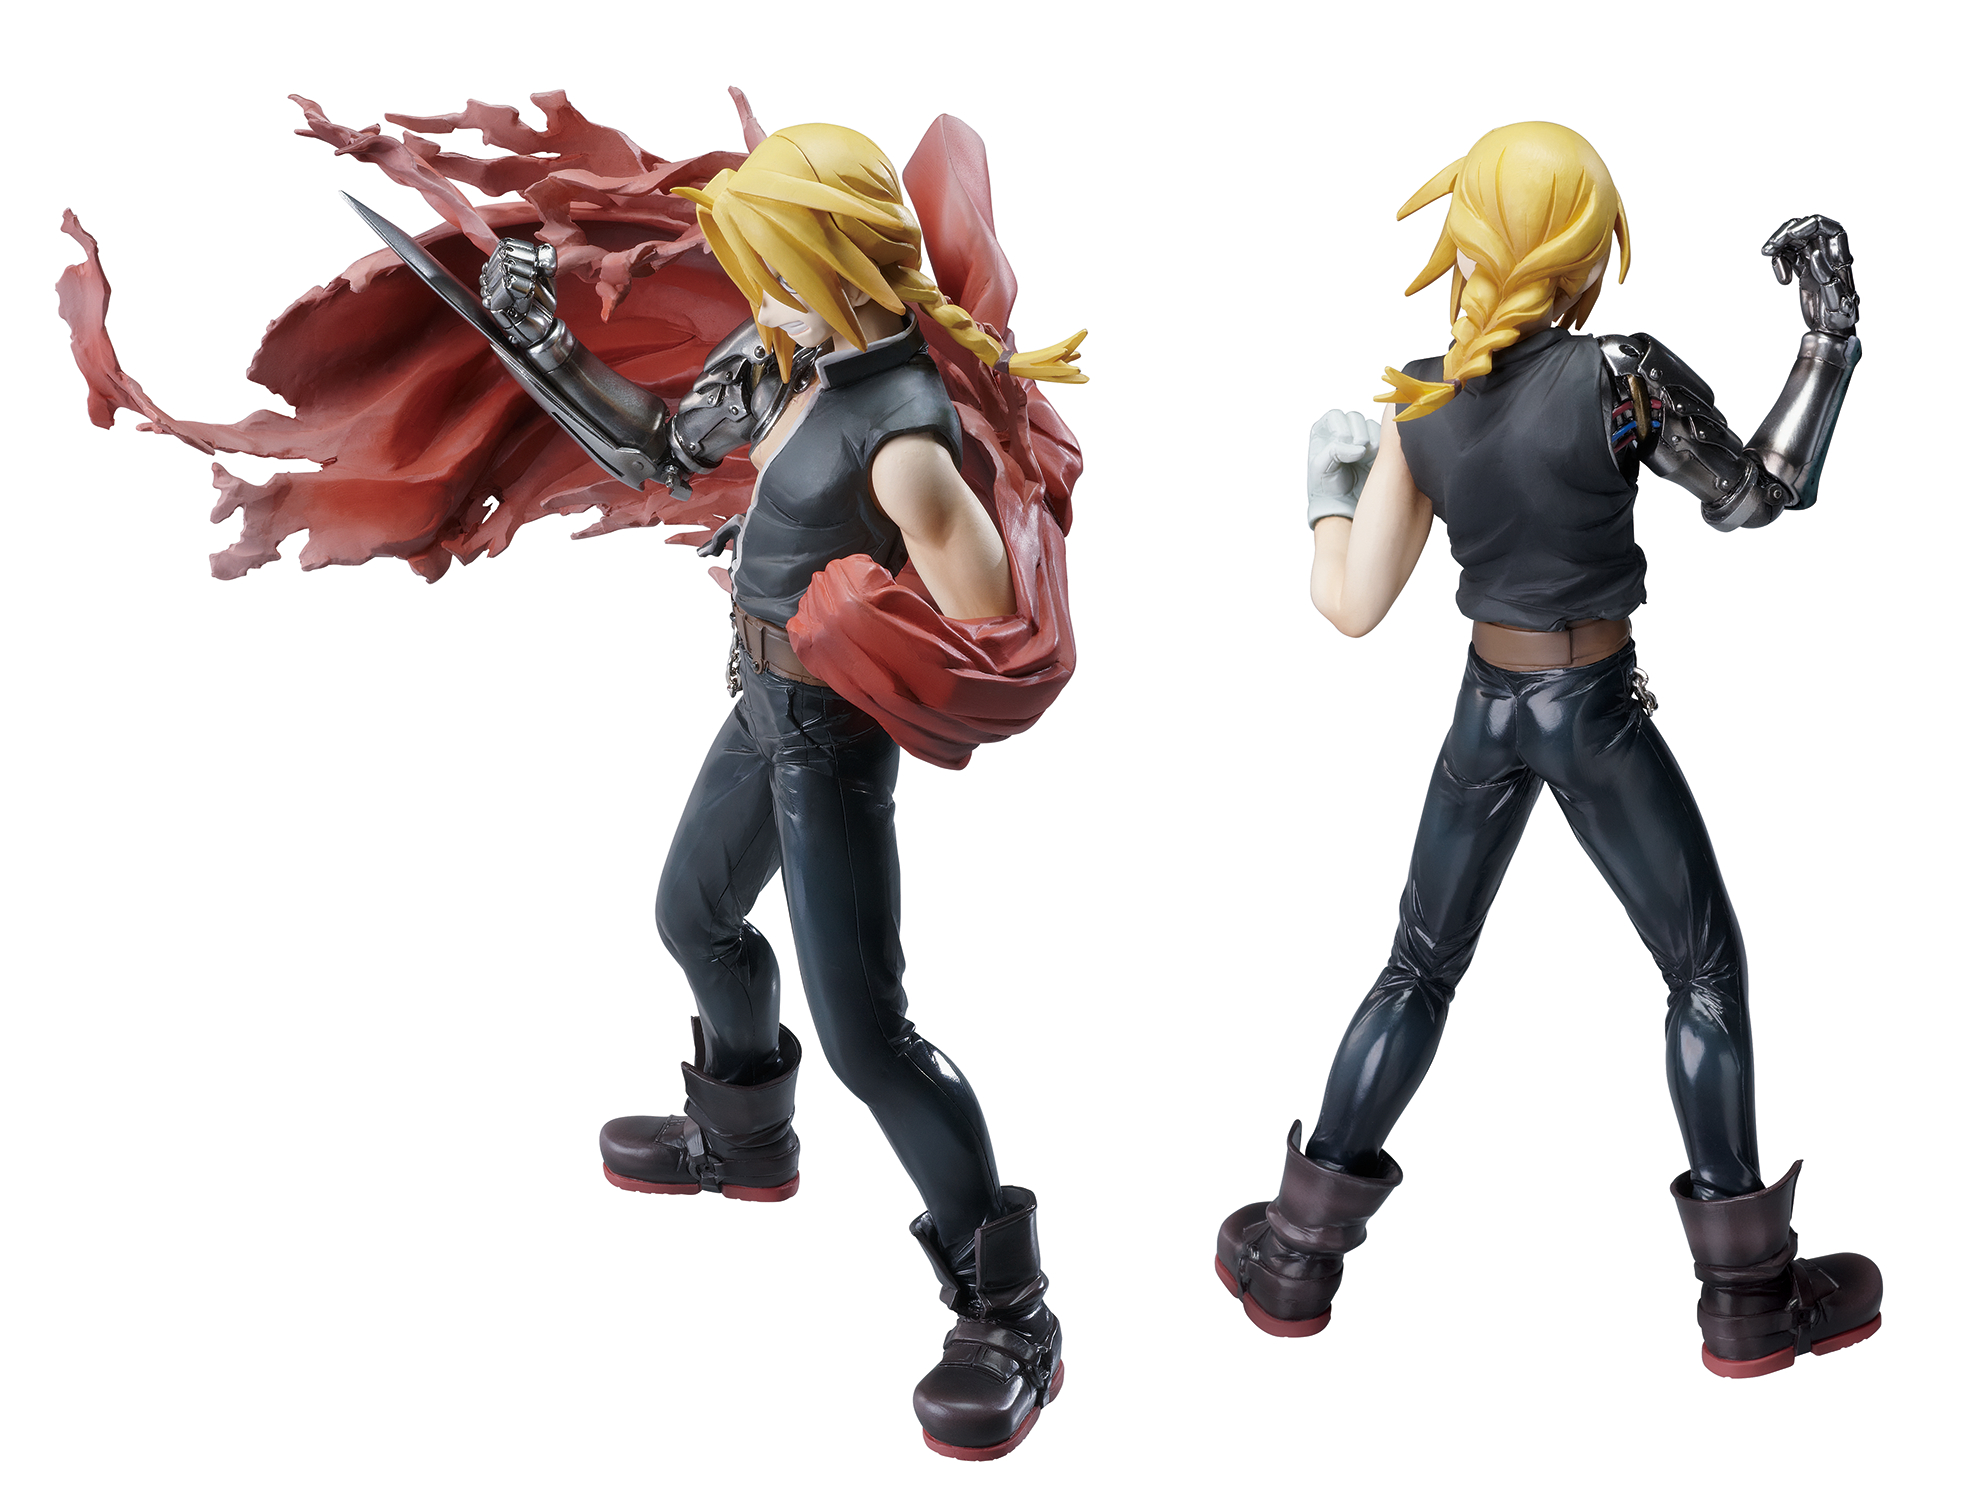 FULL METAL ALCHEMIST GEM SERIES EDWARD ELRIC PVC FIG